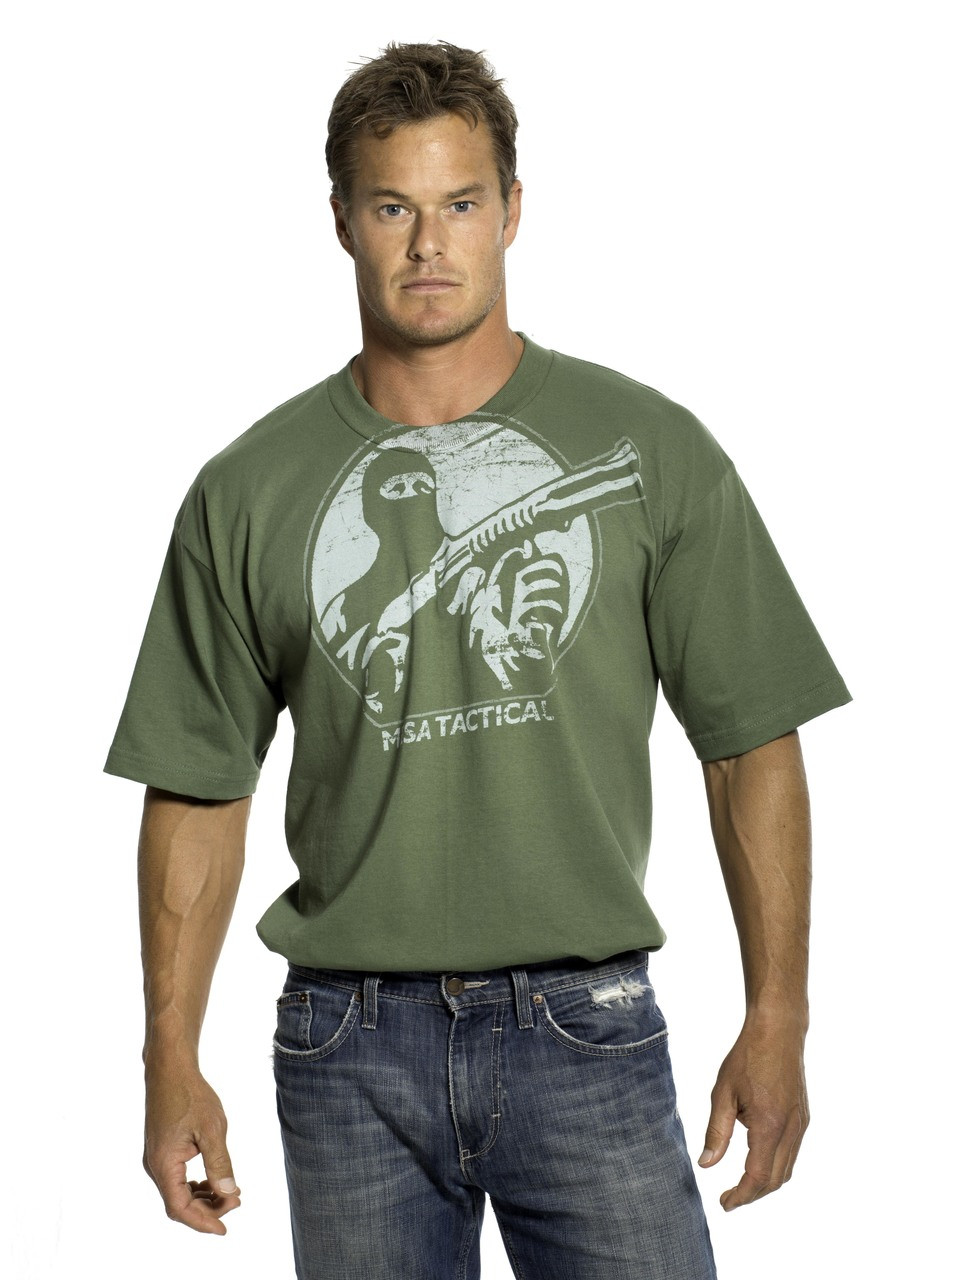 Mesa Tactical Logo & Shells Short Sleeved Tee, Large, White On Army Green